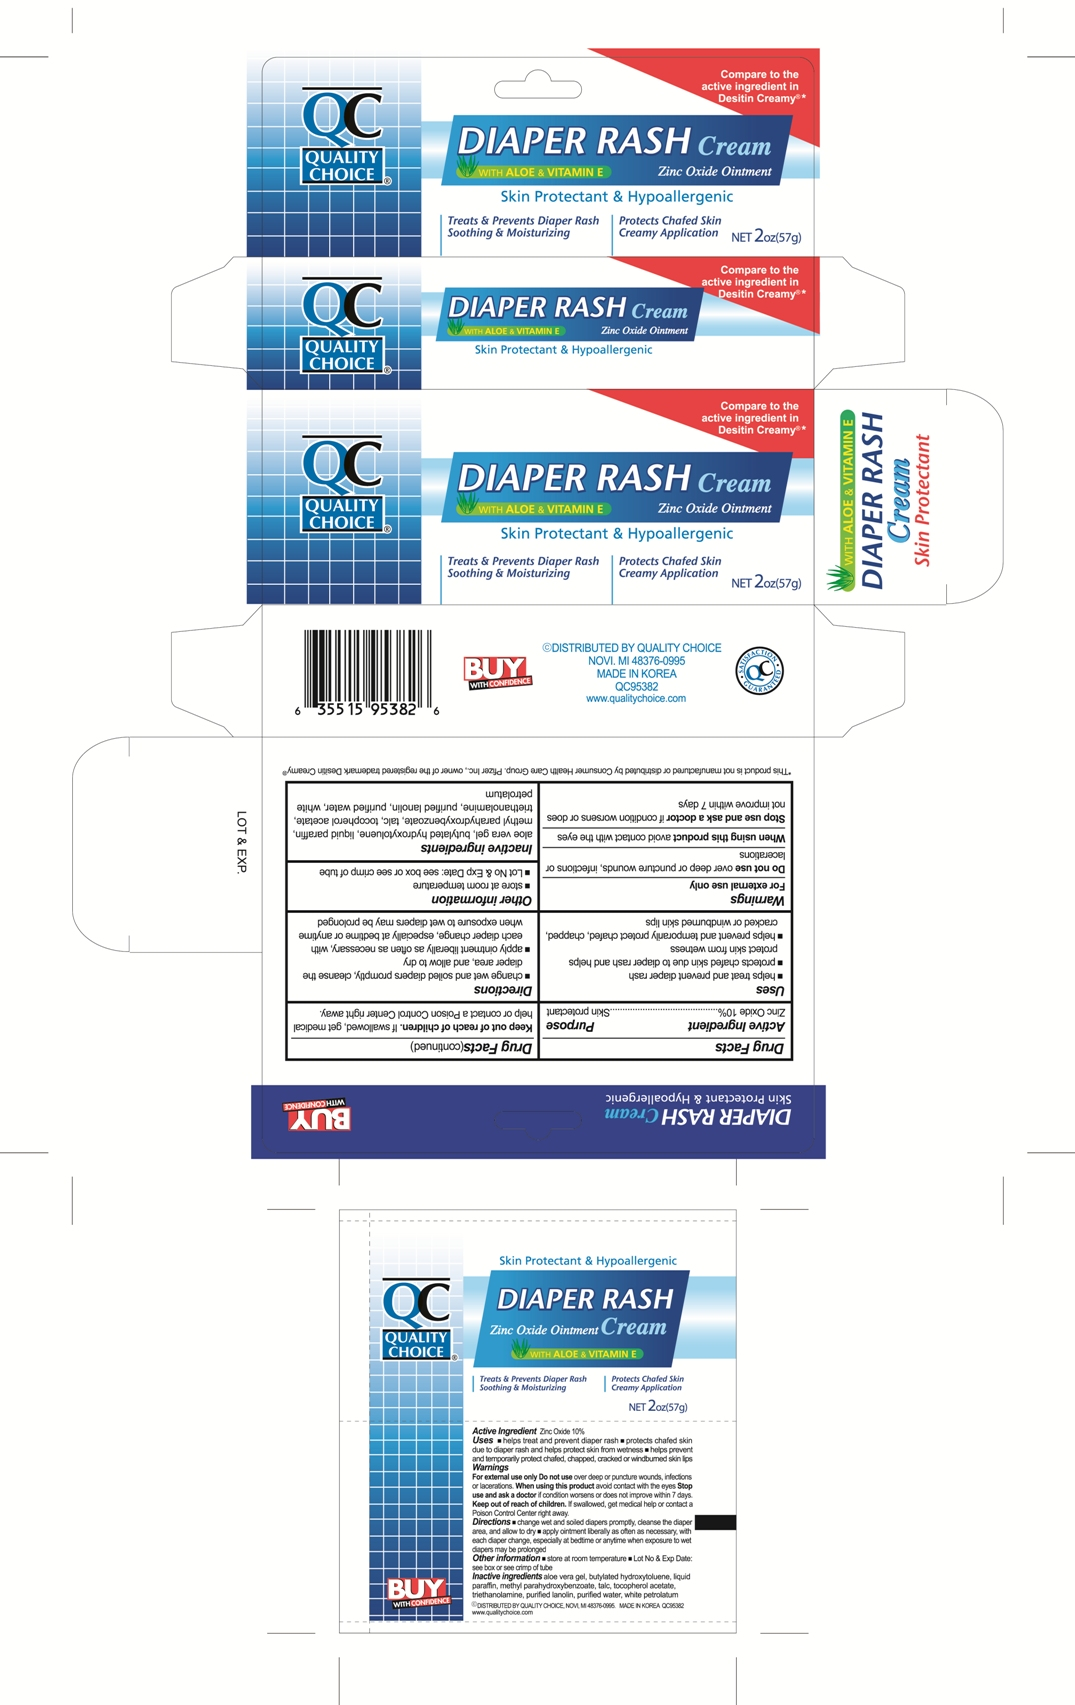 image of product carton